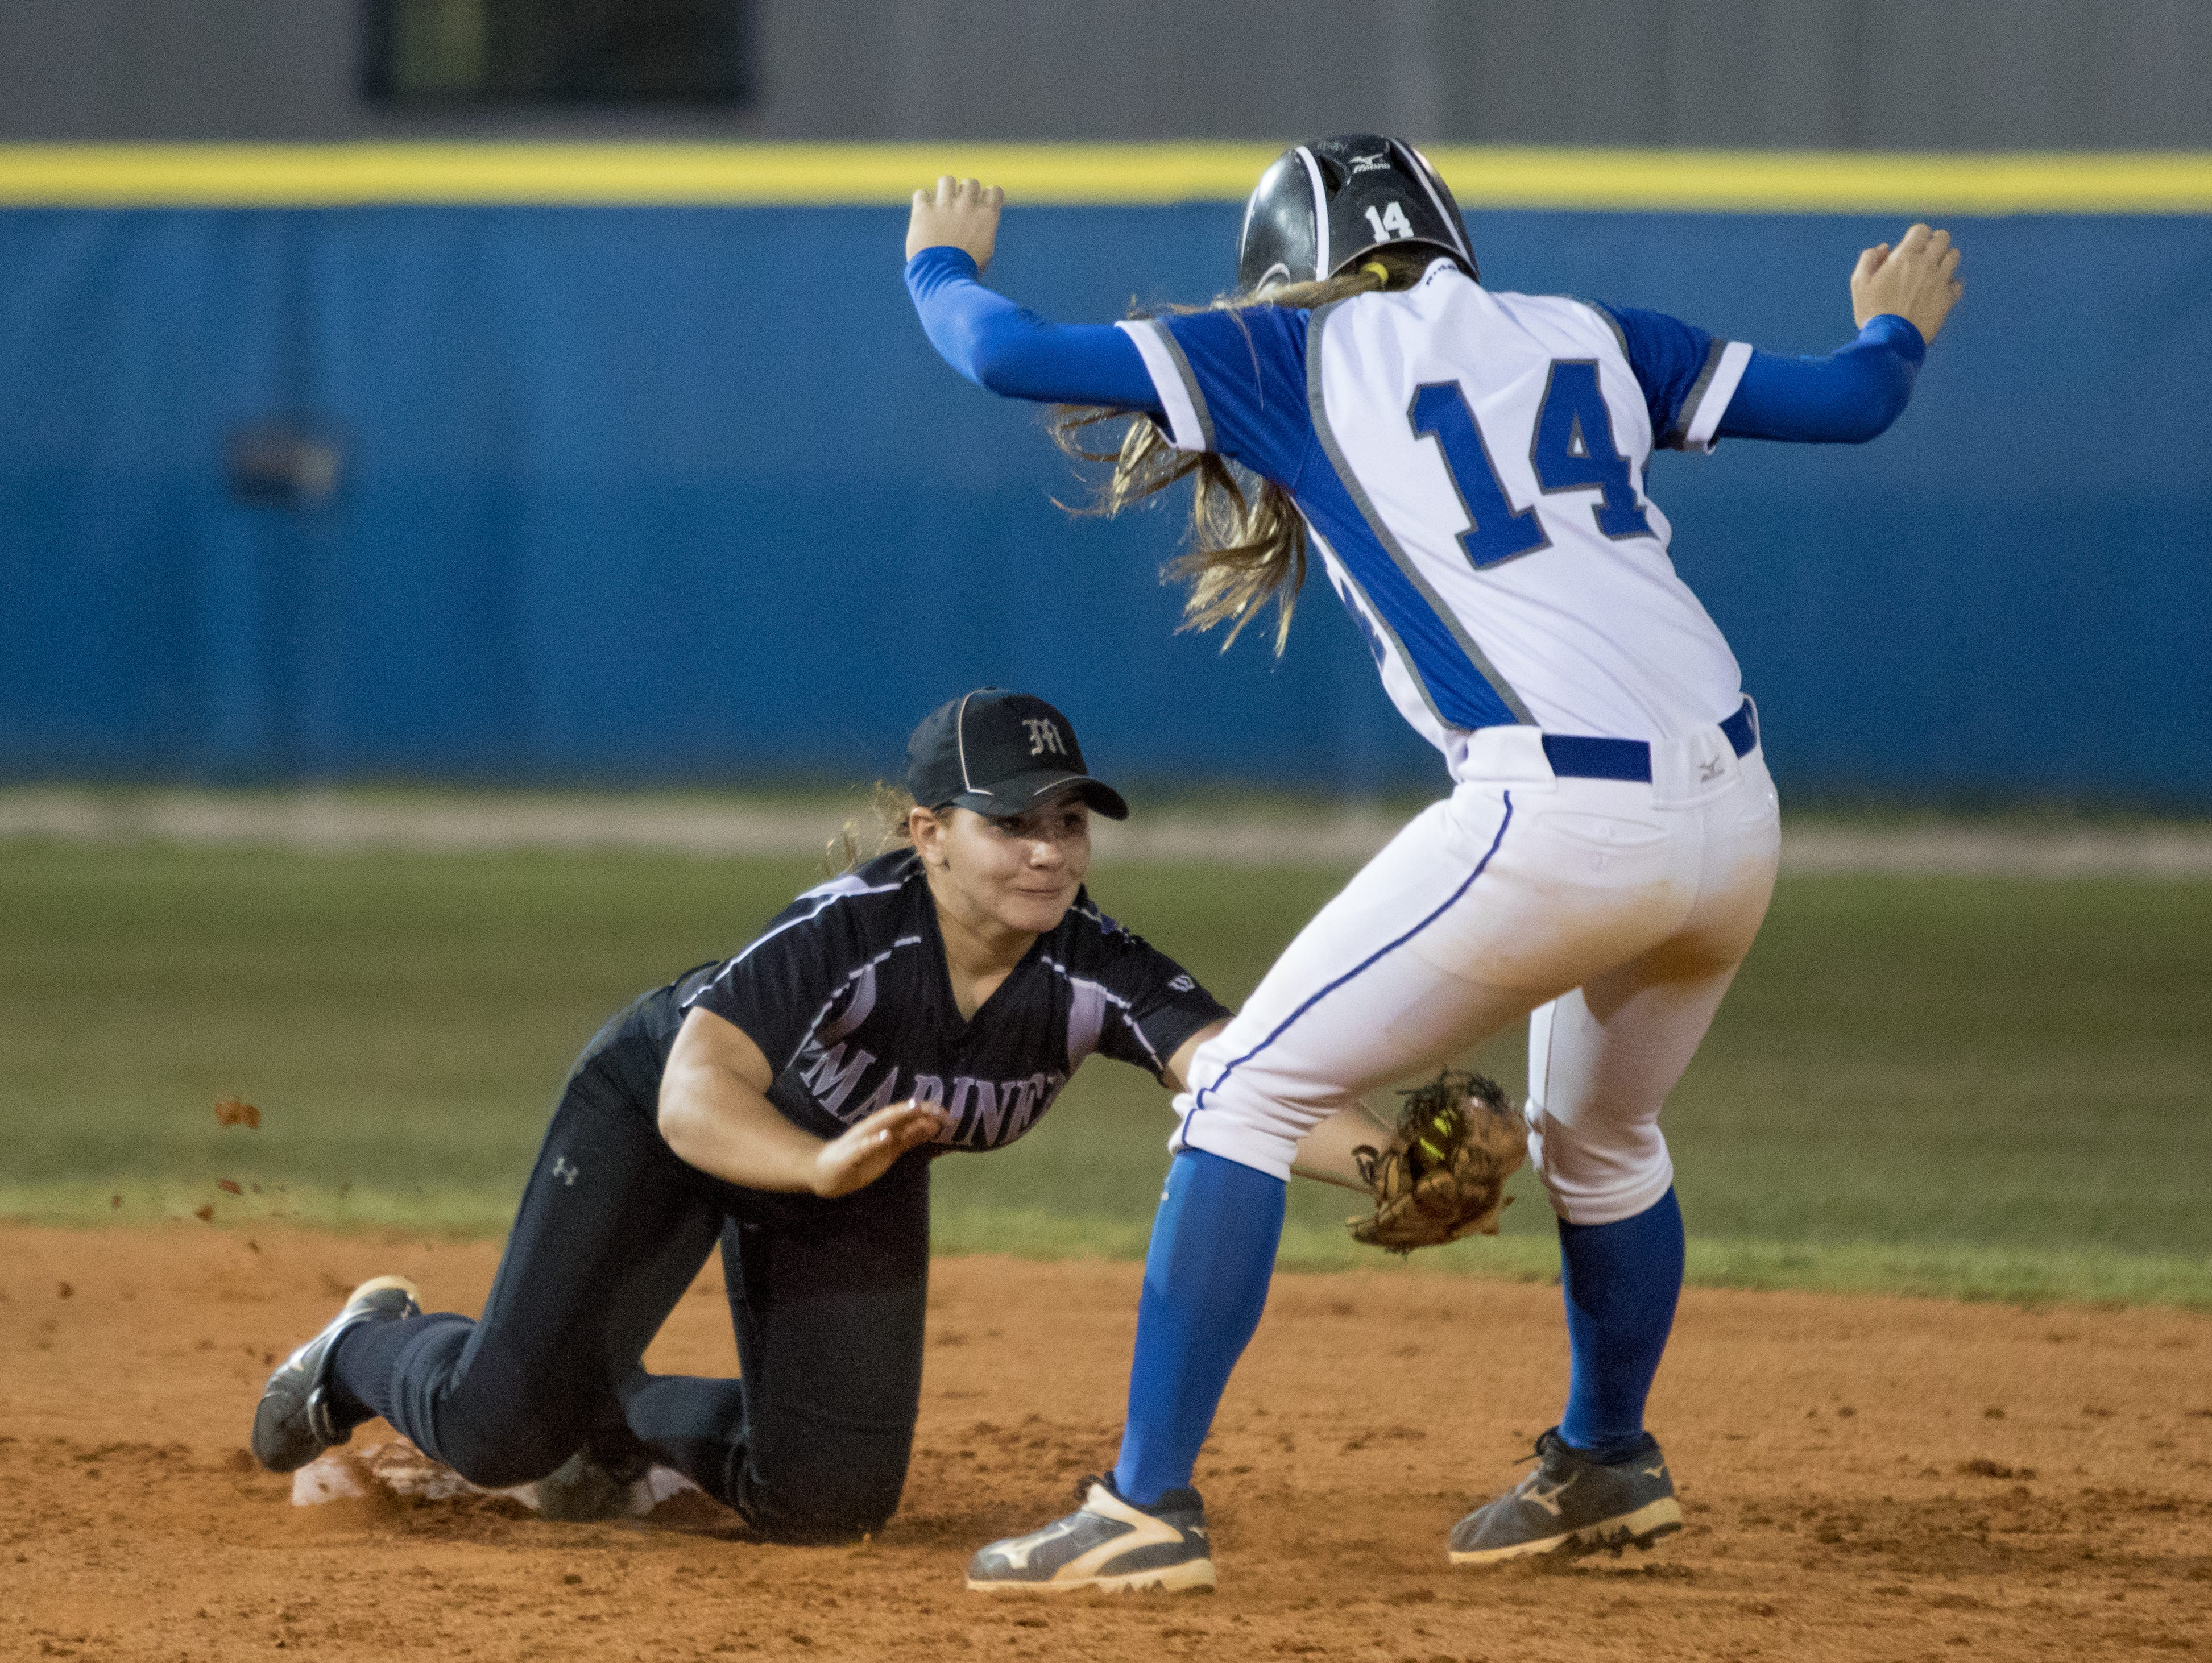 Barron Collier H.S.'s Chloe Freischmidt (14) tries to avoid the tag of Mariner H.S. second baseman Ari Sosa (6) during a failed attempt to steal second in the class 6A regional softball quarterfinal game at Barron Collier High School in Naples, FL on Wednesday, April 20, 2016. (Photo by Gregg Pachkowski/Special to the Daily News)